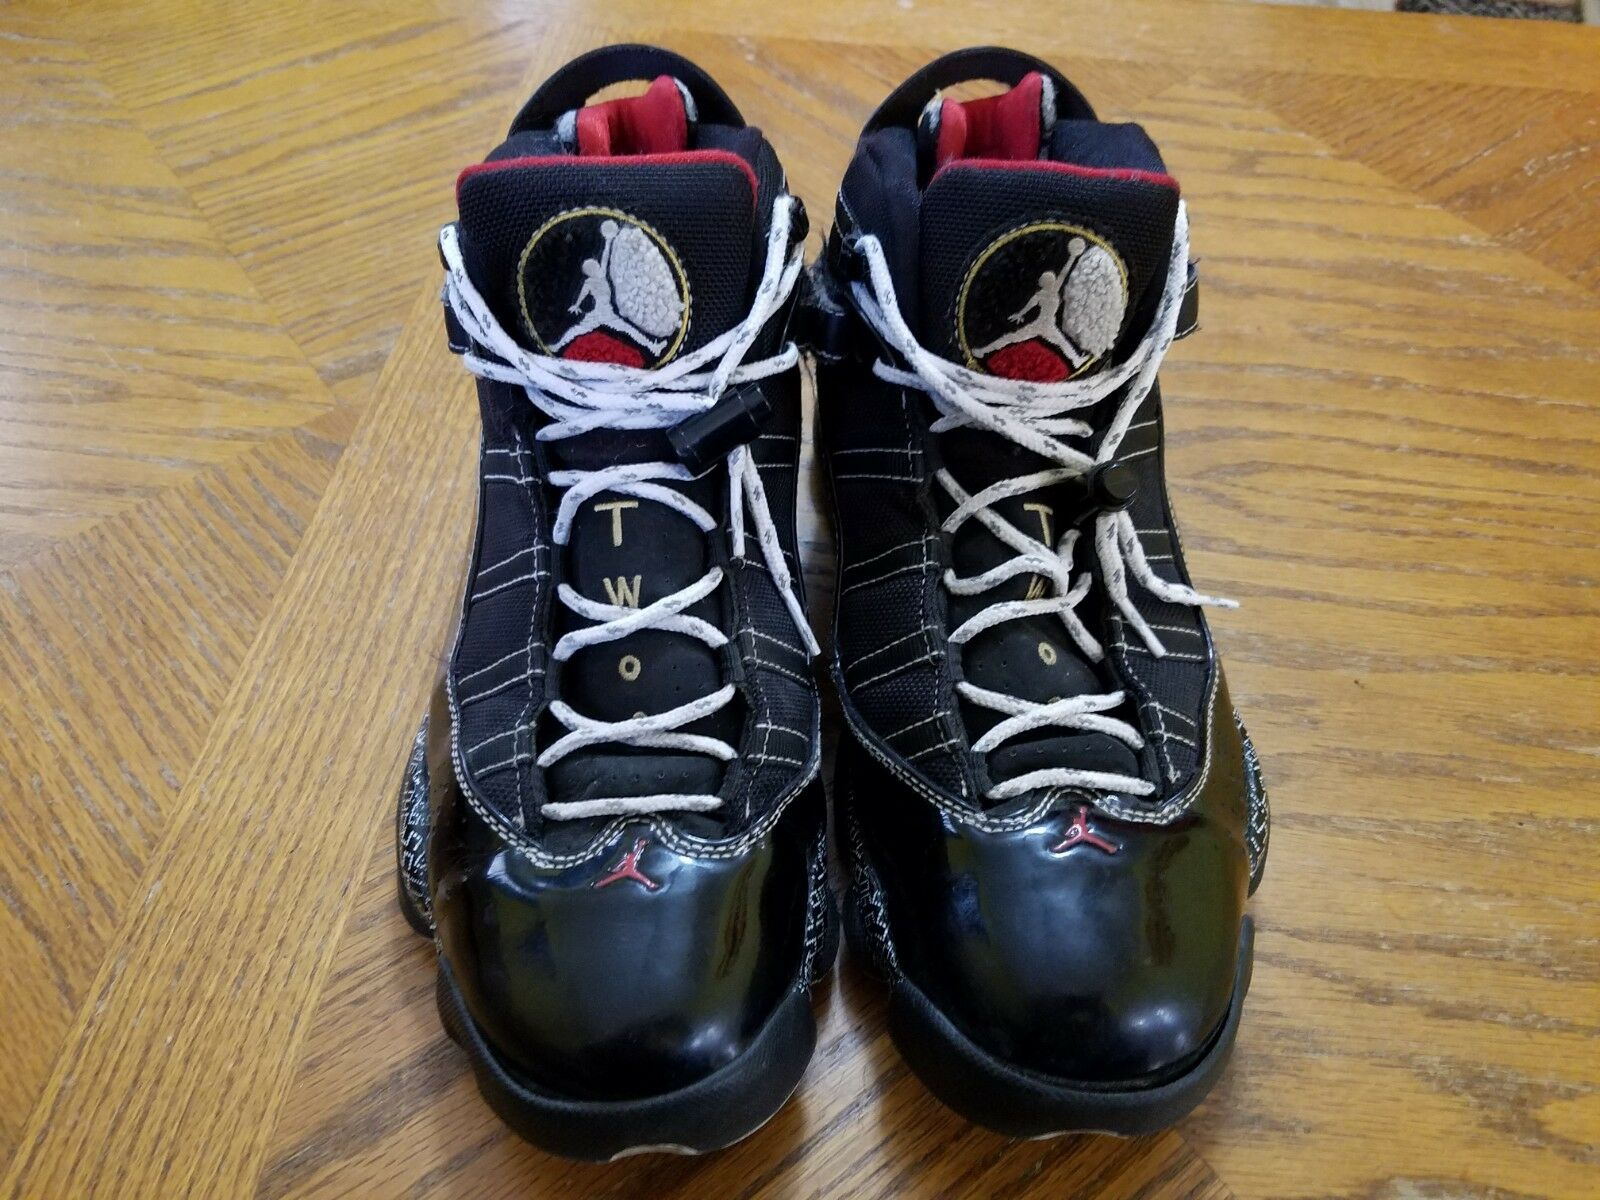 Used Worn Size 8 Nike Air Jordan 6 Rings Hall of Fame shoes 371497-031